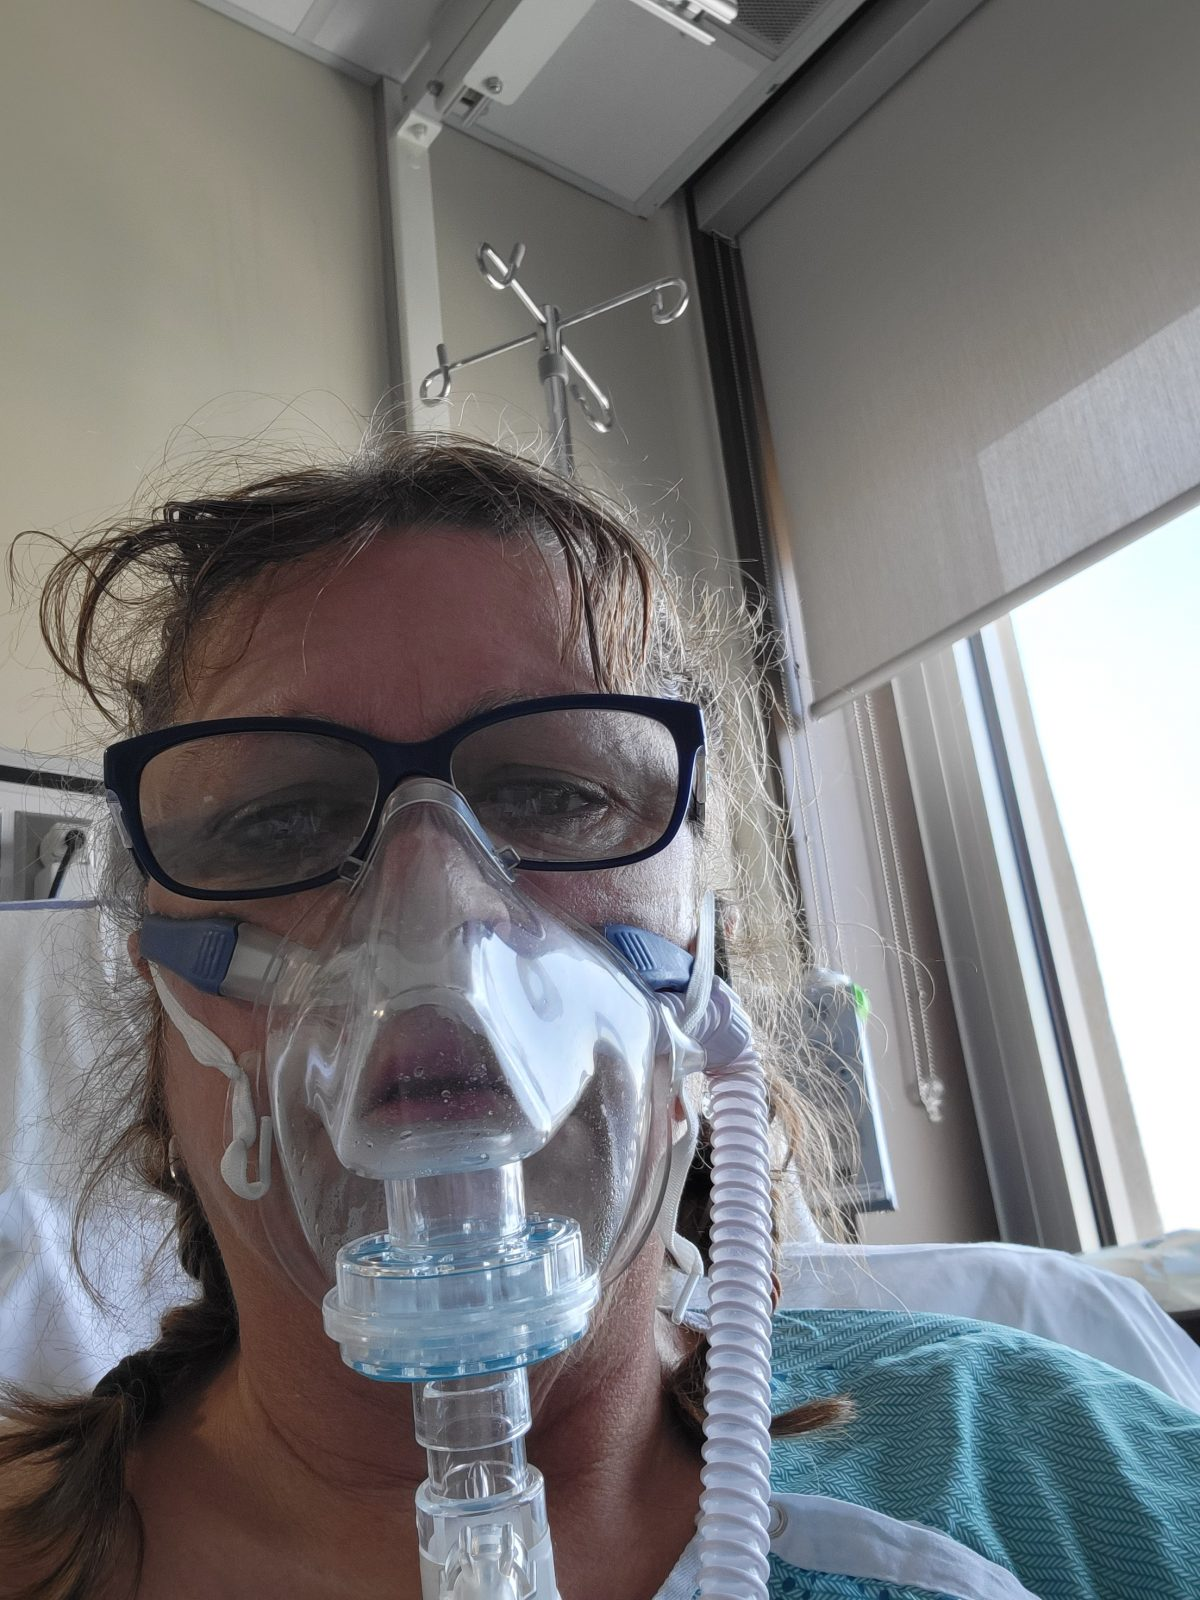 Reality of contracting COVID-19 and being in an ICU at the CCH